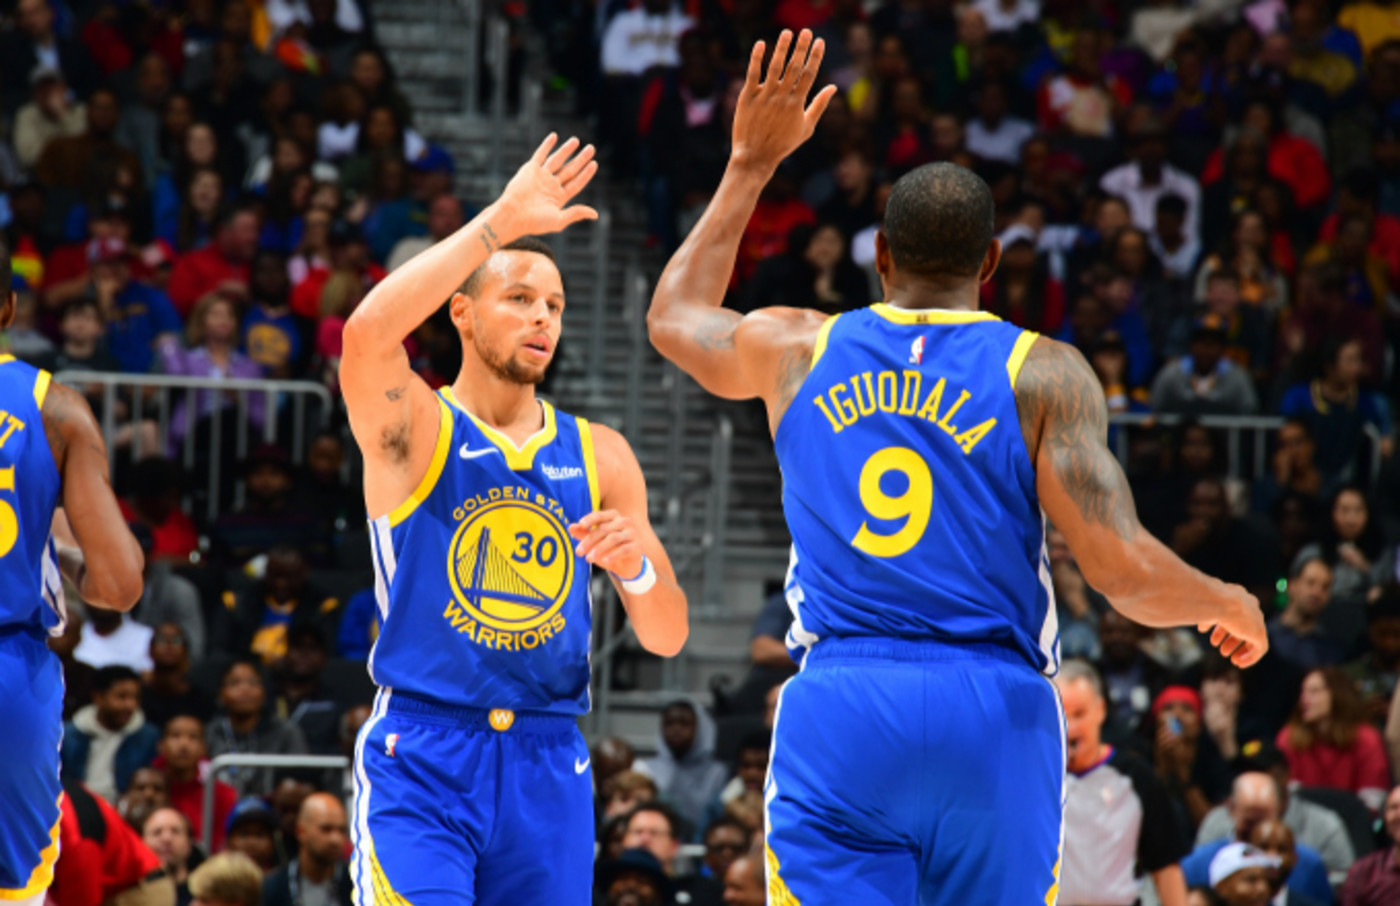 Stephen Curry #30 and Andre Iguodala #9 of the Golden State Warriors celebrates